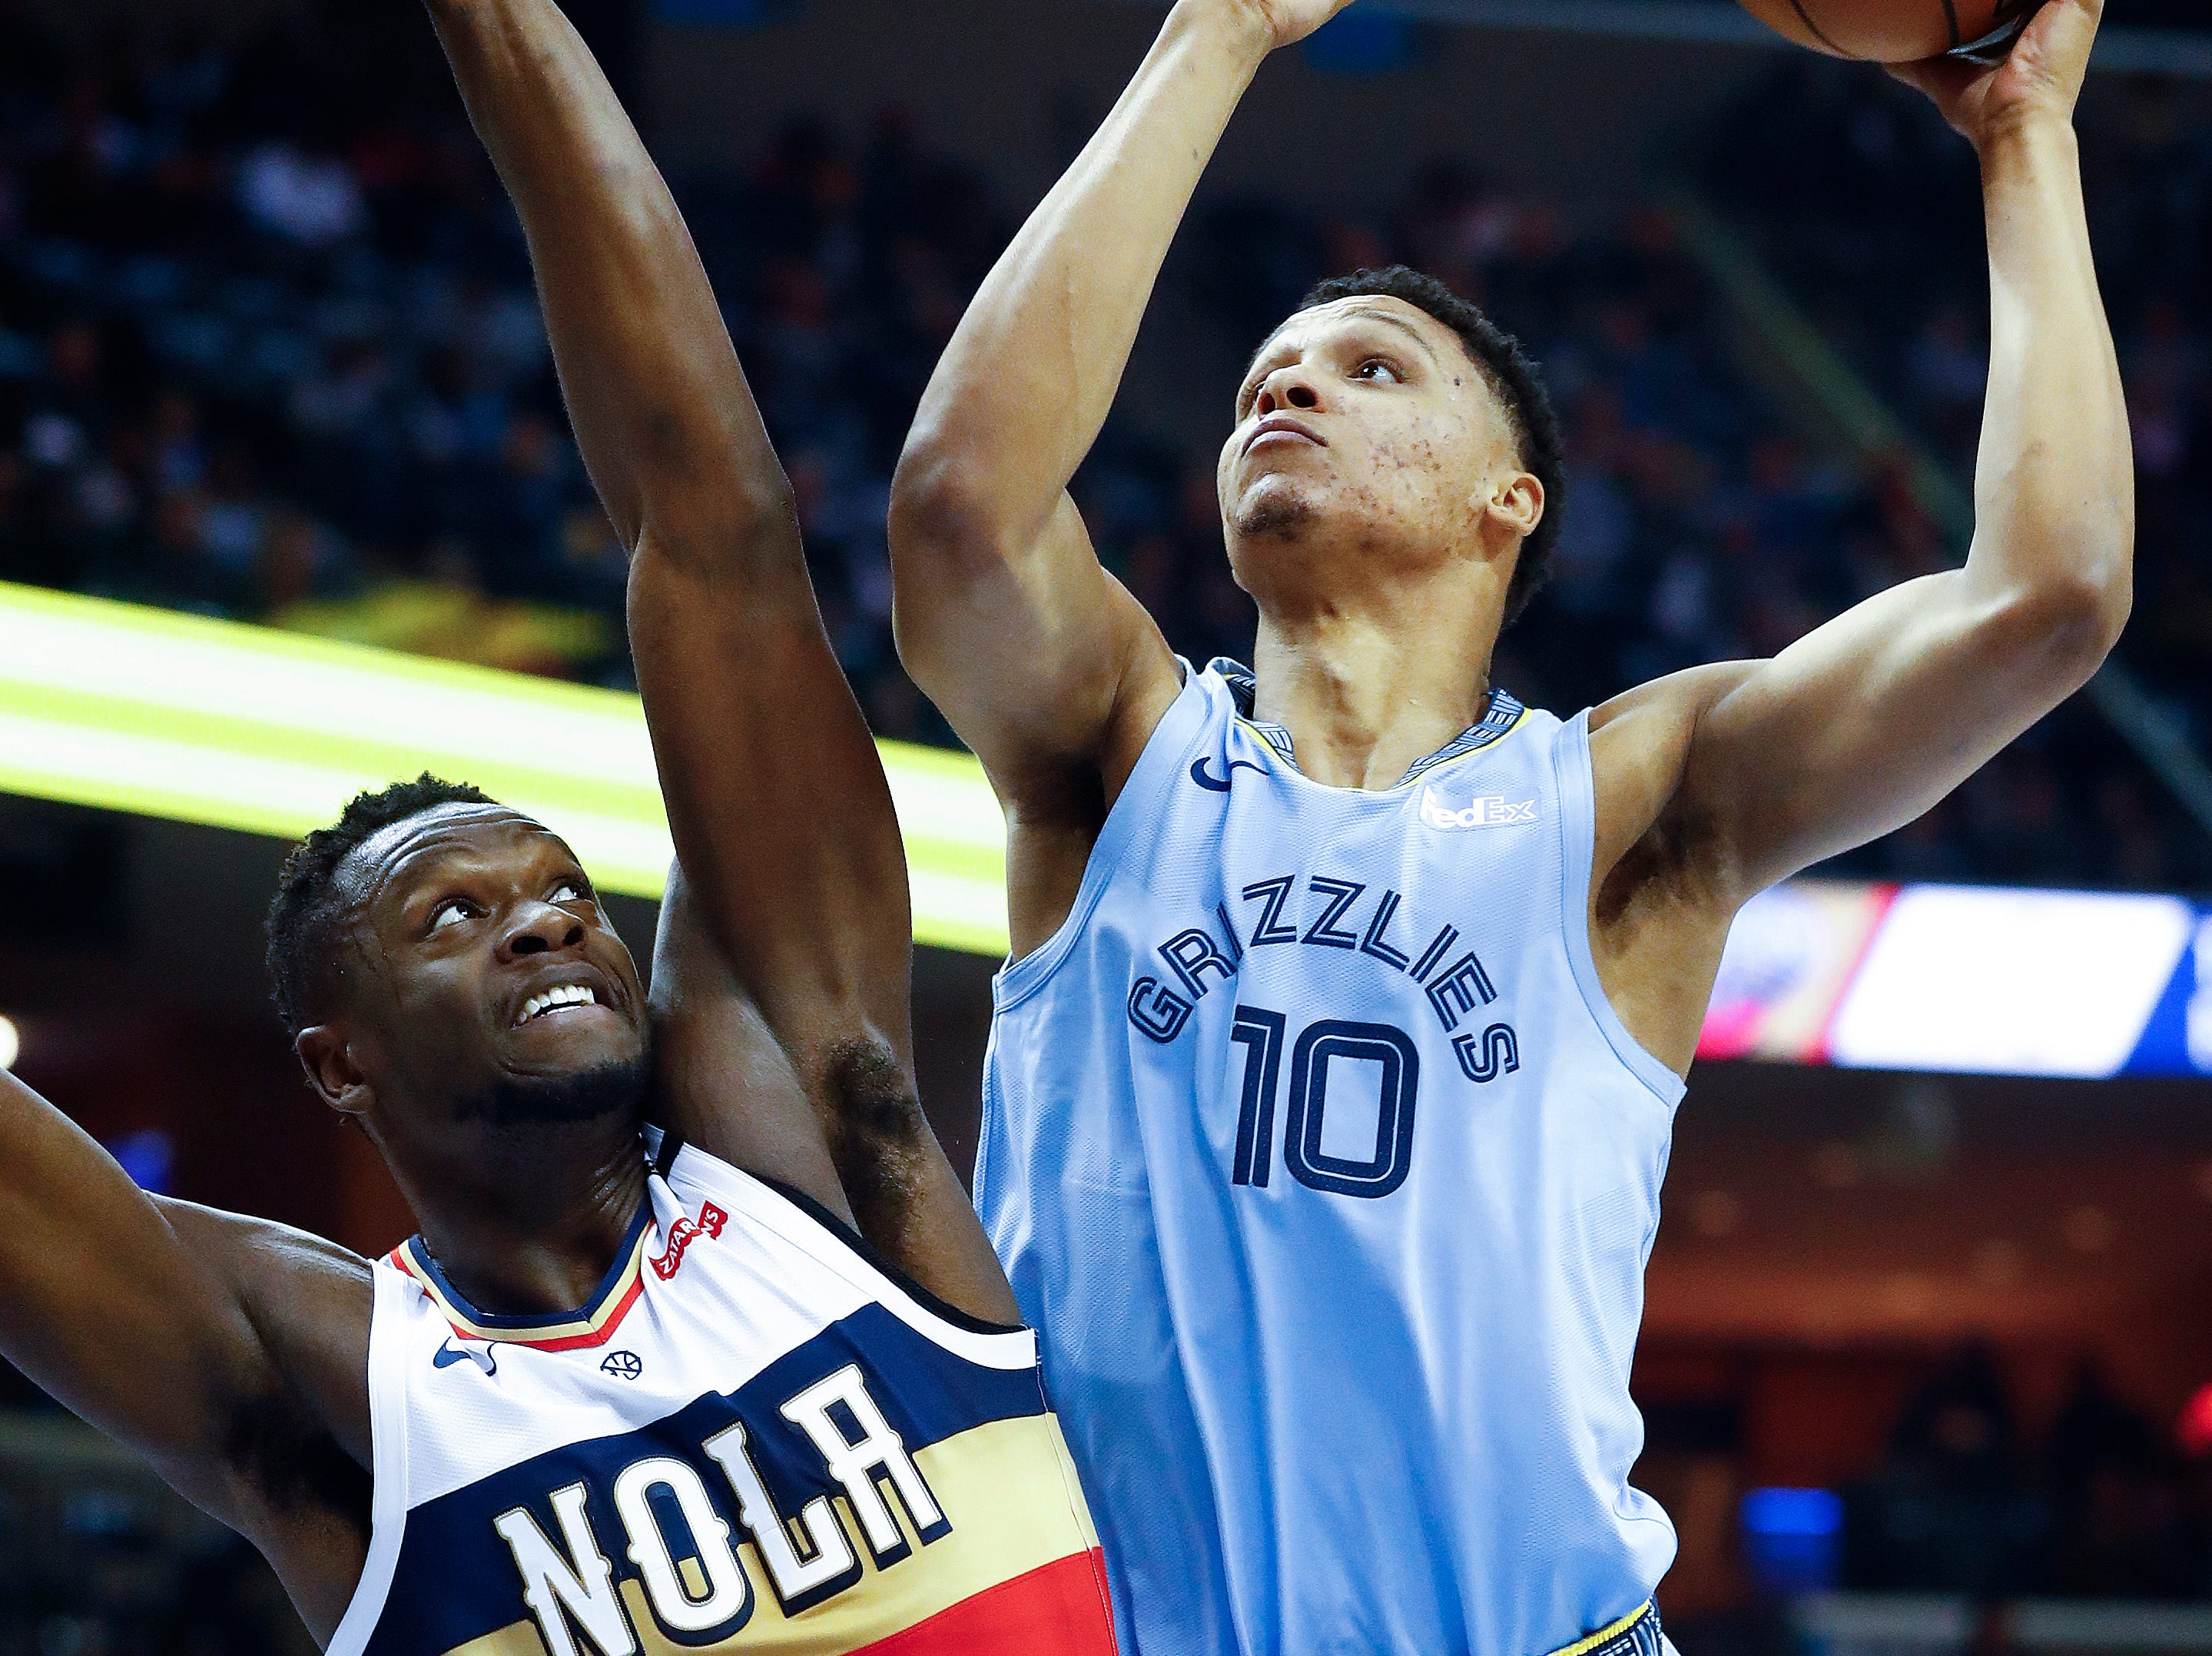 Memphis Grizzlies forward Ivan Rabb (right) hits a shot over New Orleans Pelicans defender Julius Randle (left) during action at the FedExForum in Memphis, Tenn., Monday, January 21, 2019.